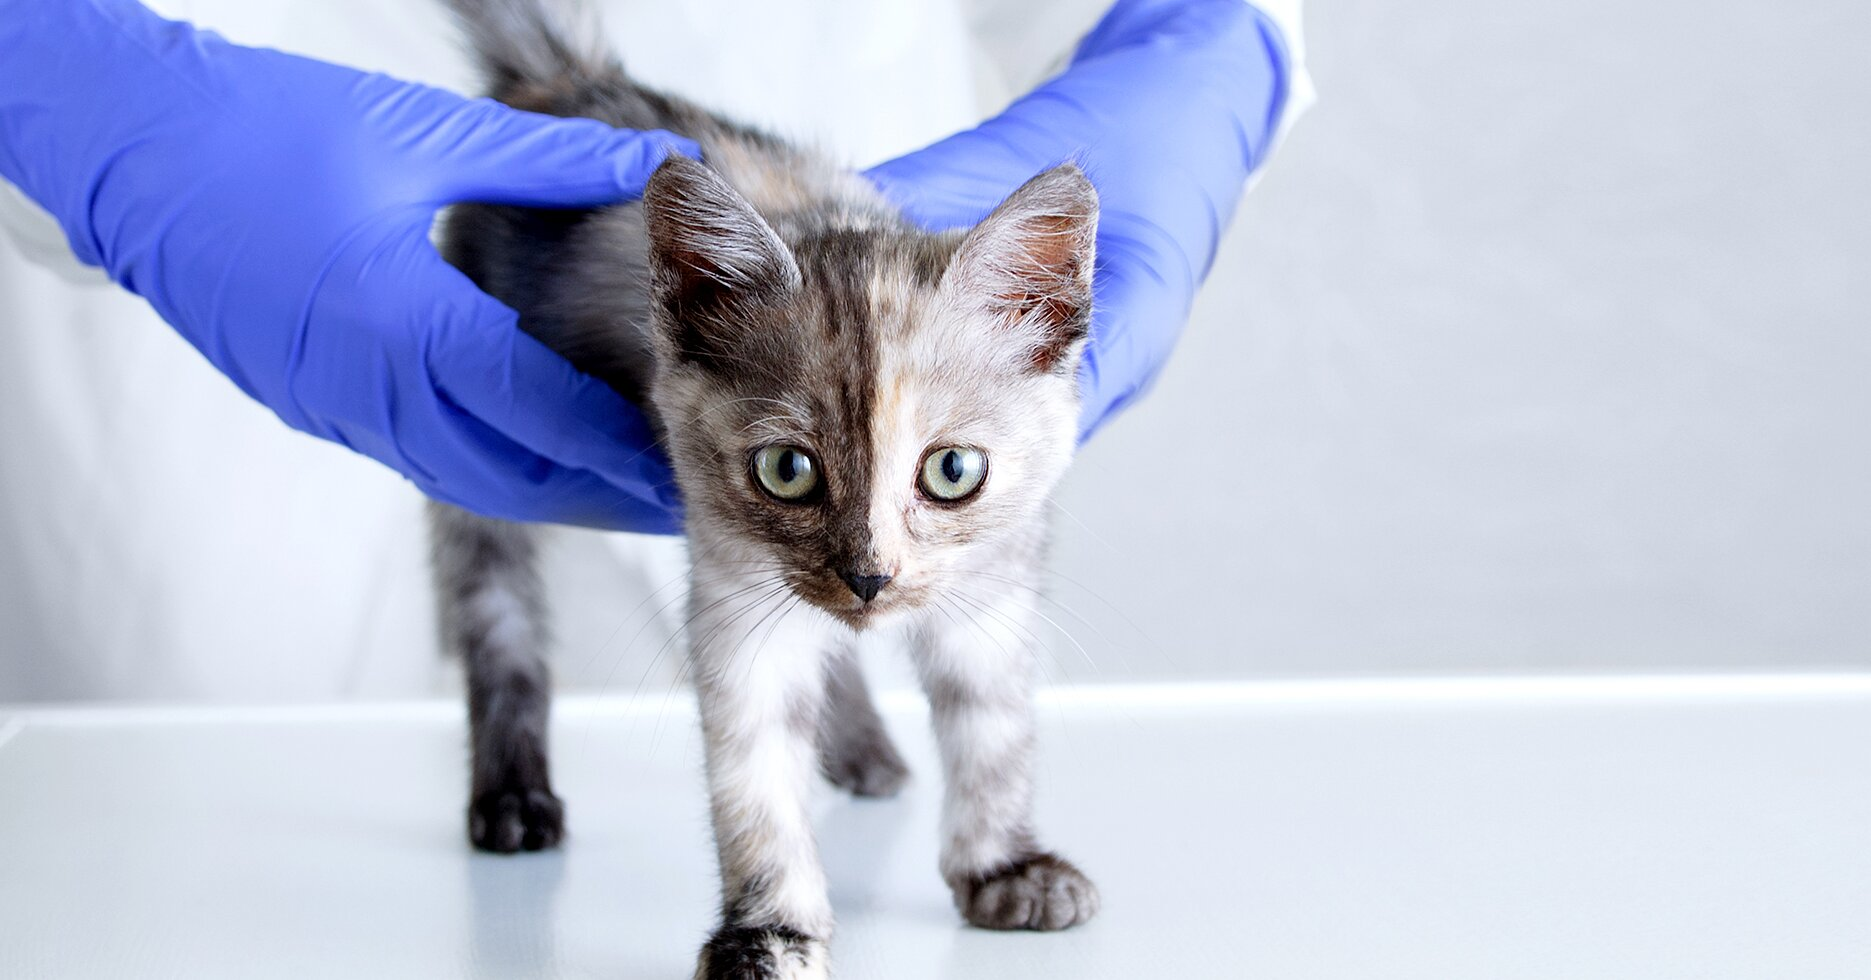 How Often Should You Get Your Pet's Blood Tested?